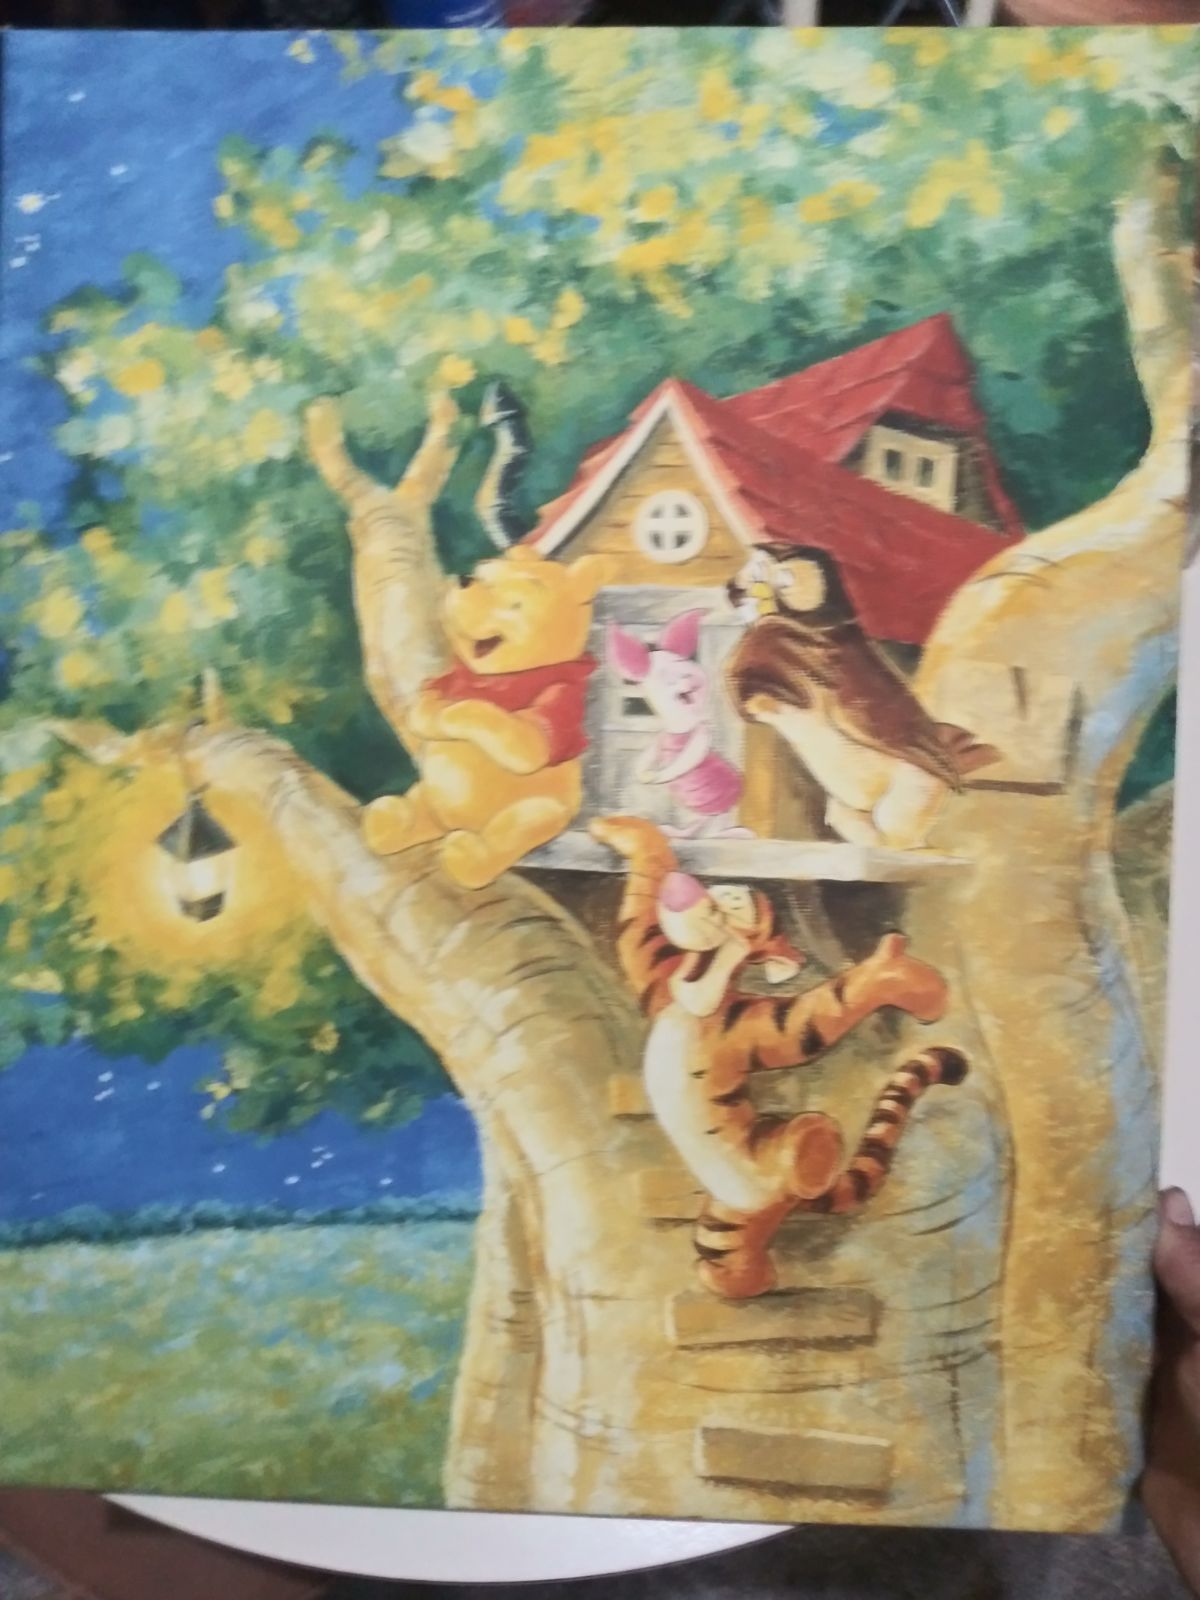 Pooh painting